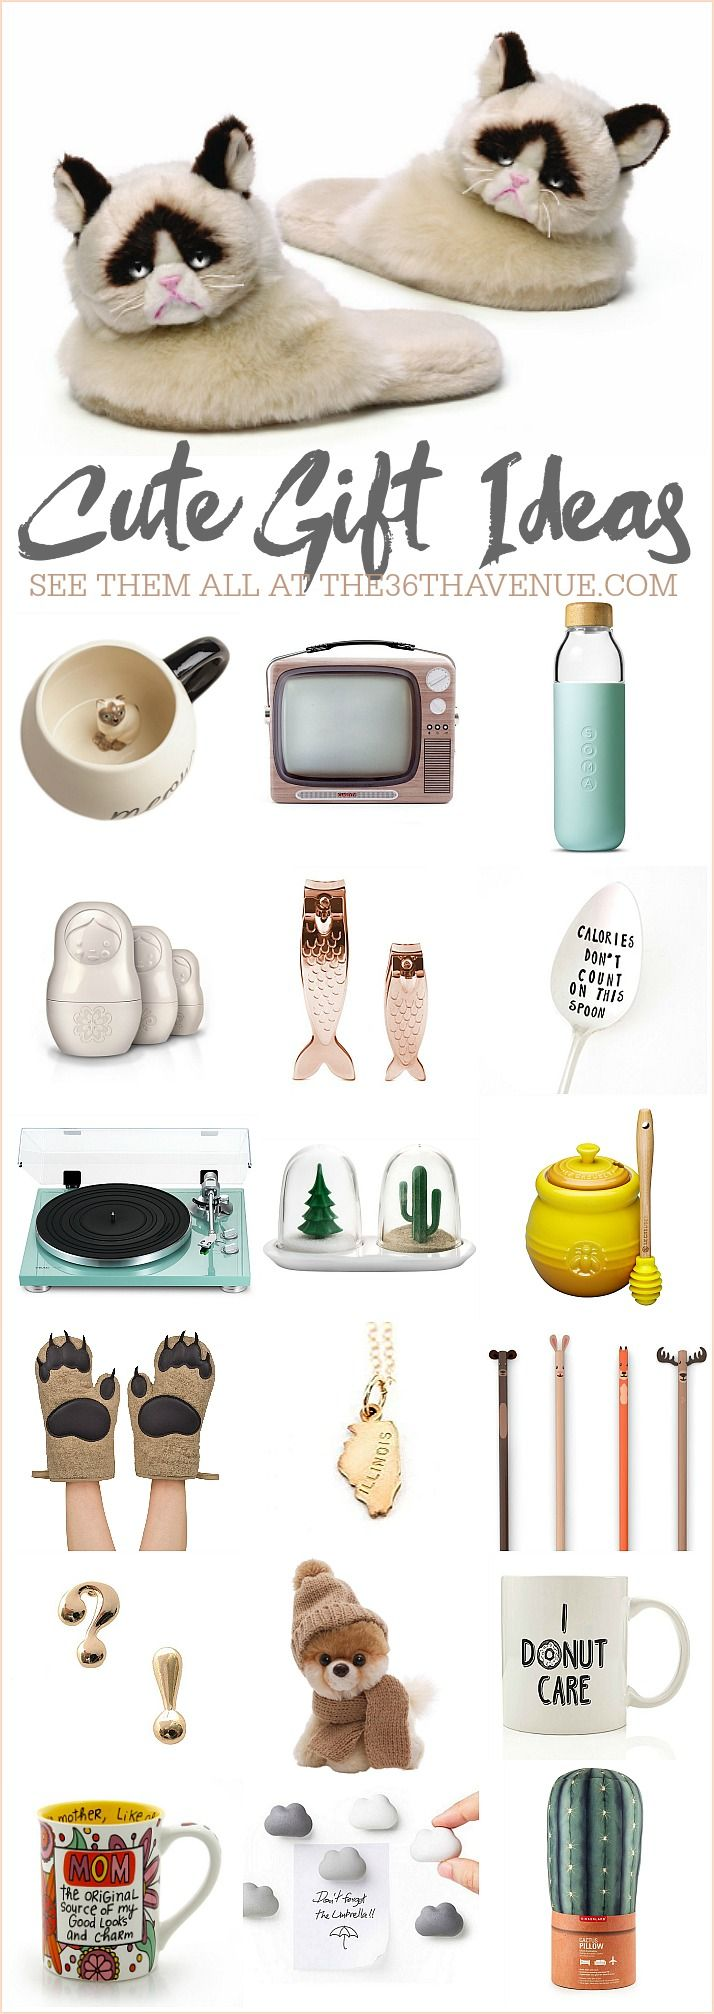 25 Gift Ideas - Cute Women Gifts | Unique gifts, Christmas gifts ...